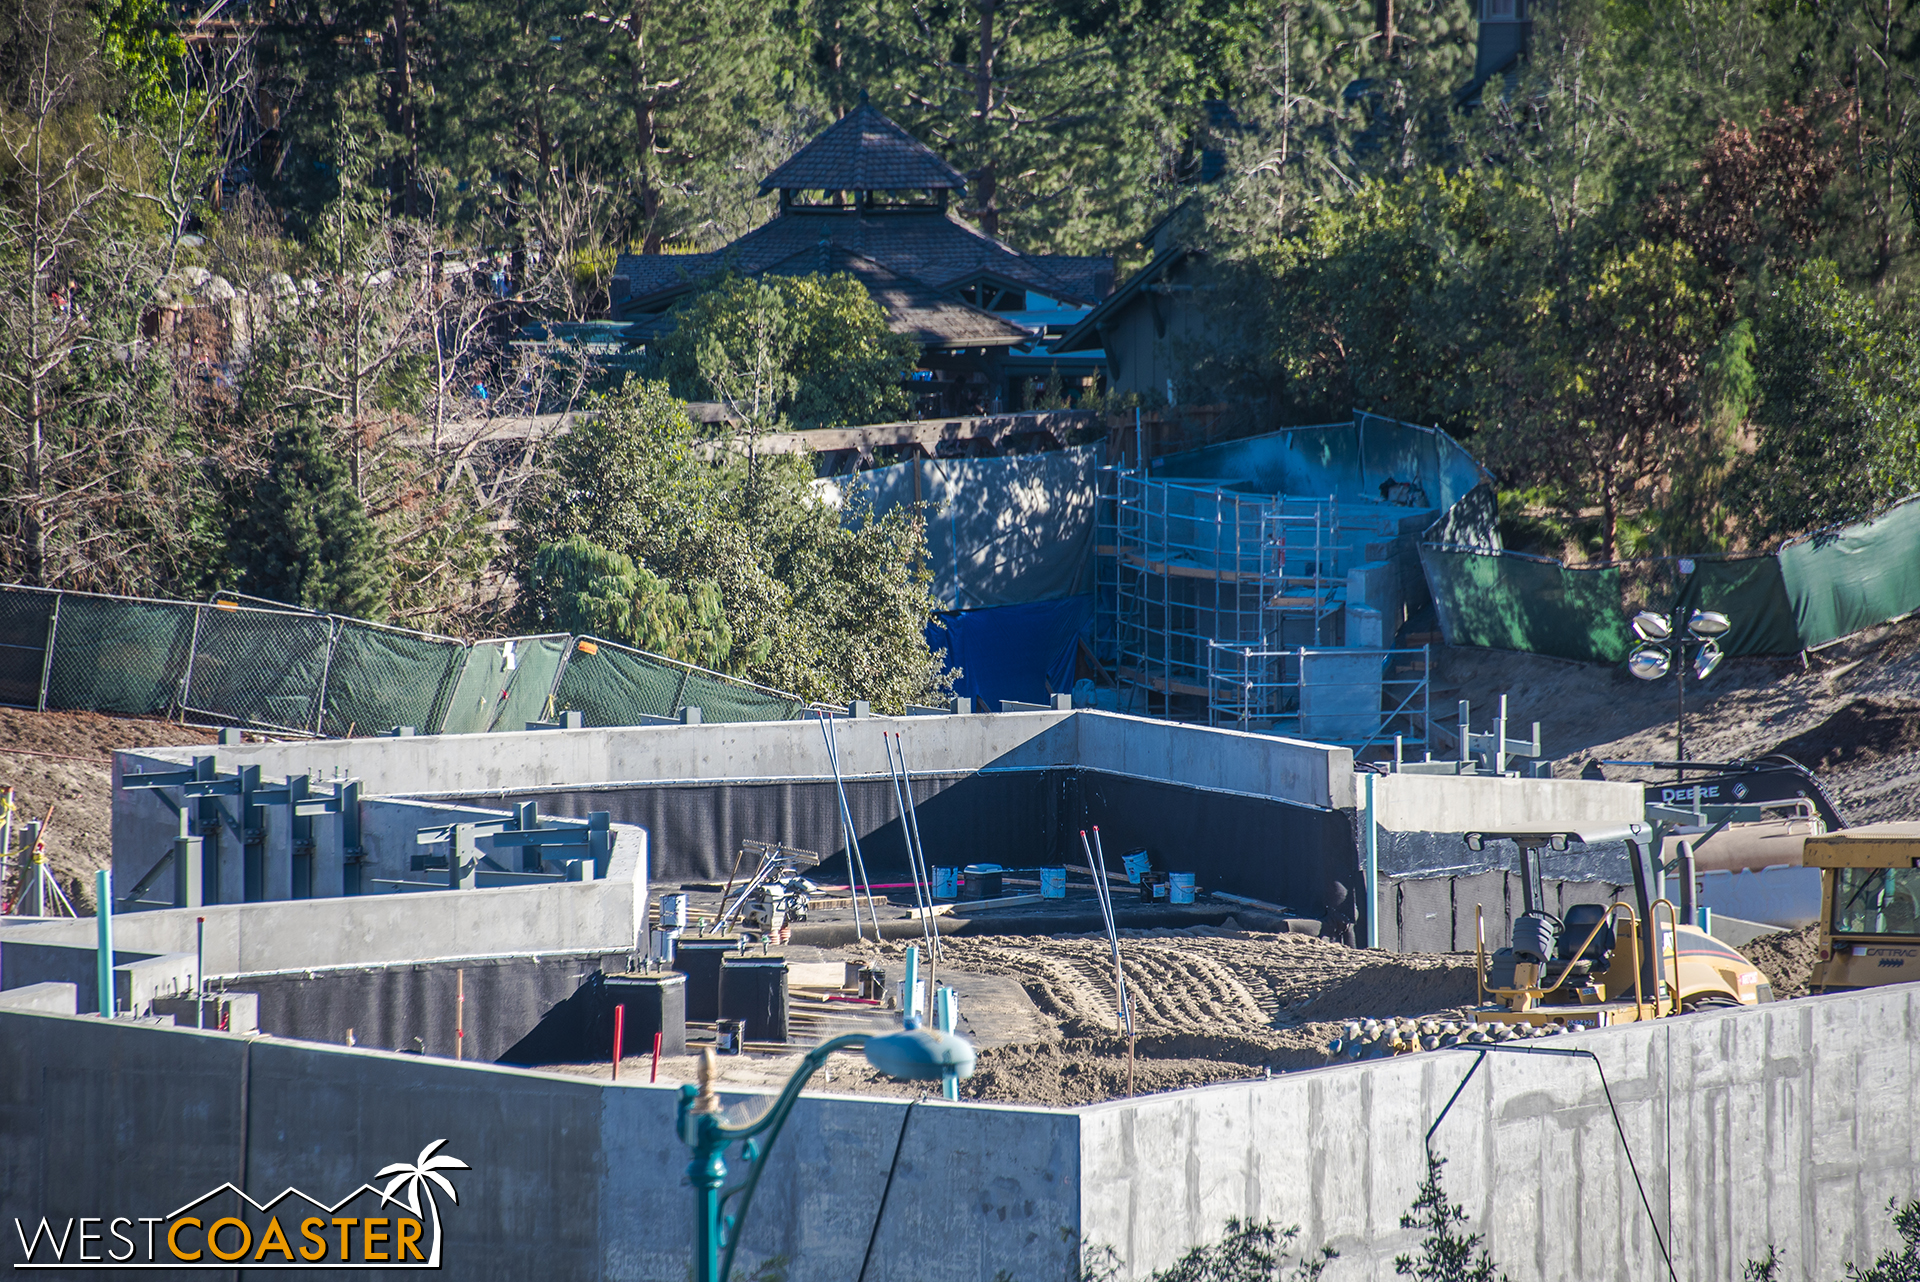 Work has also started along the pathway after the Critter Country entry, as evidenced by scaffolding that has popped up in the background.